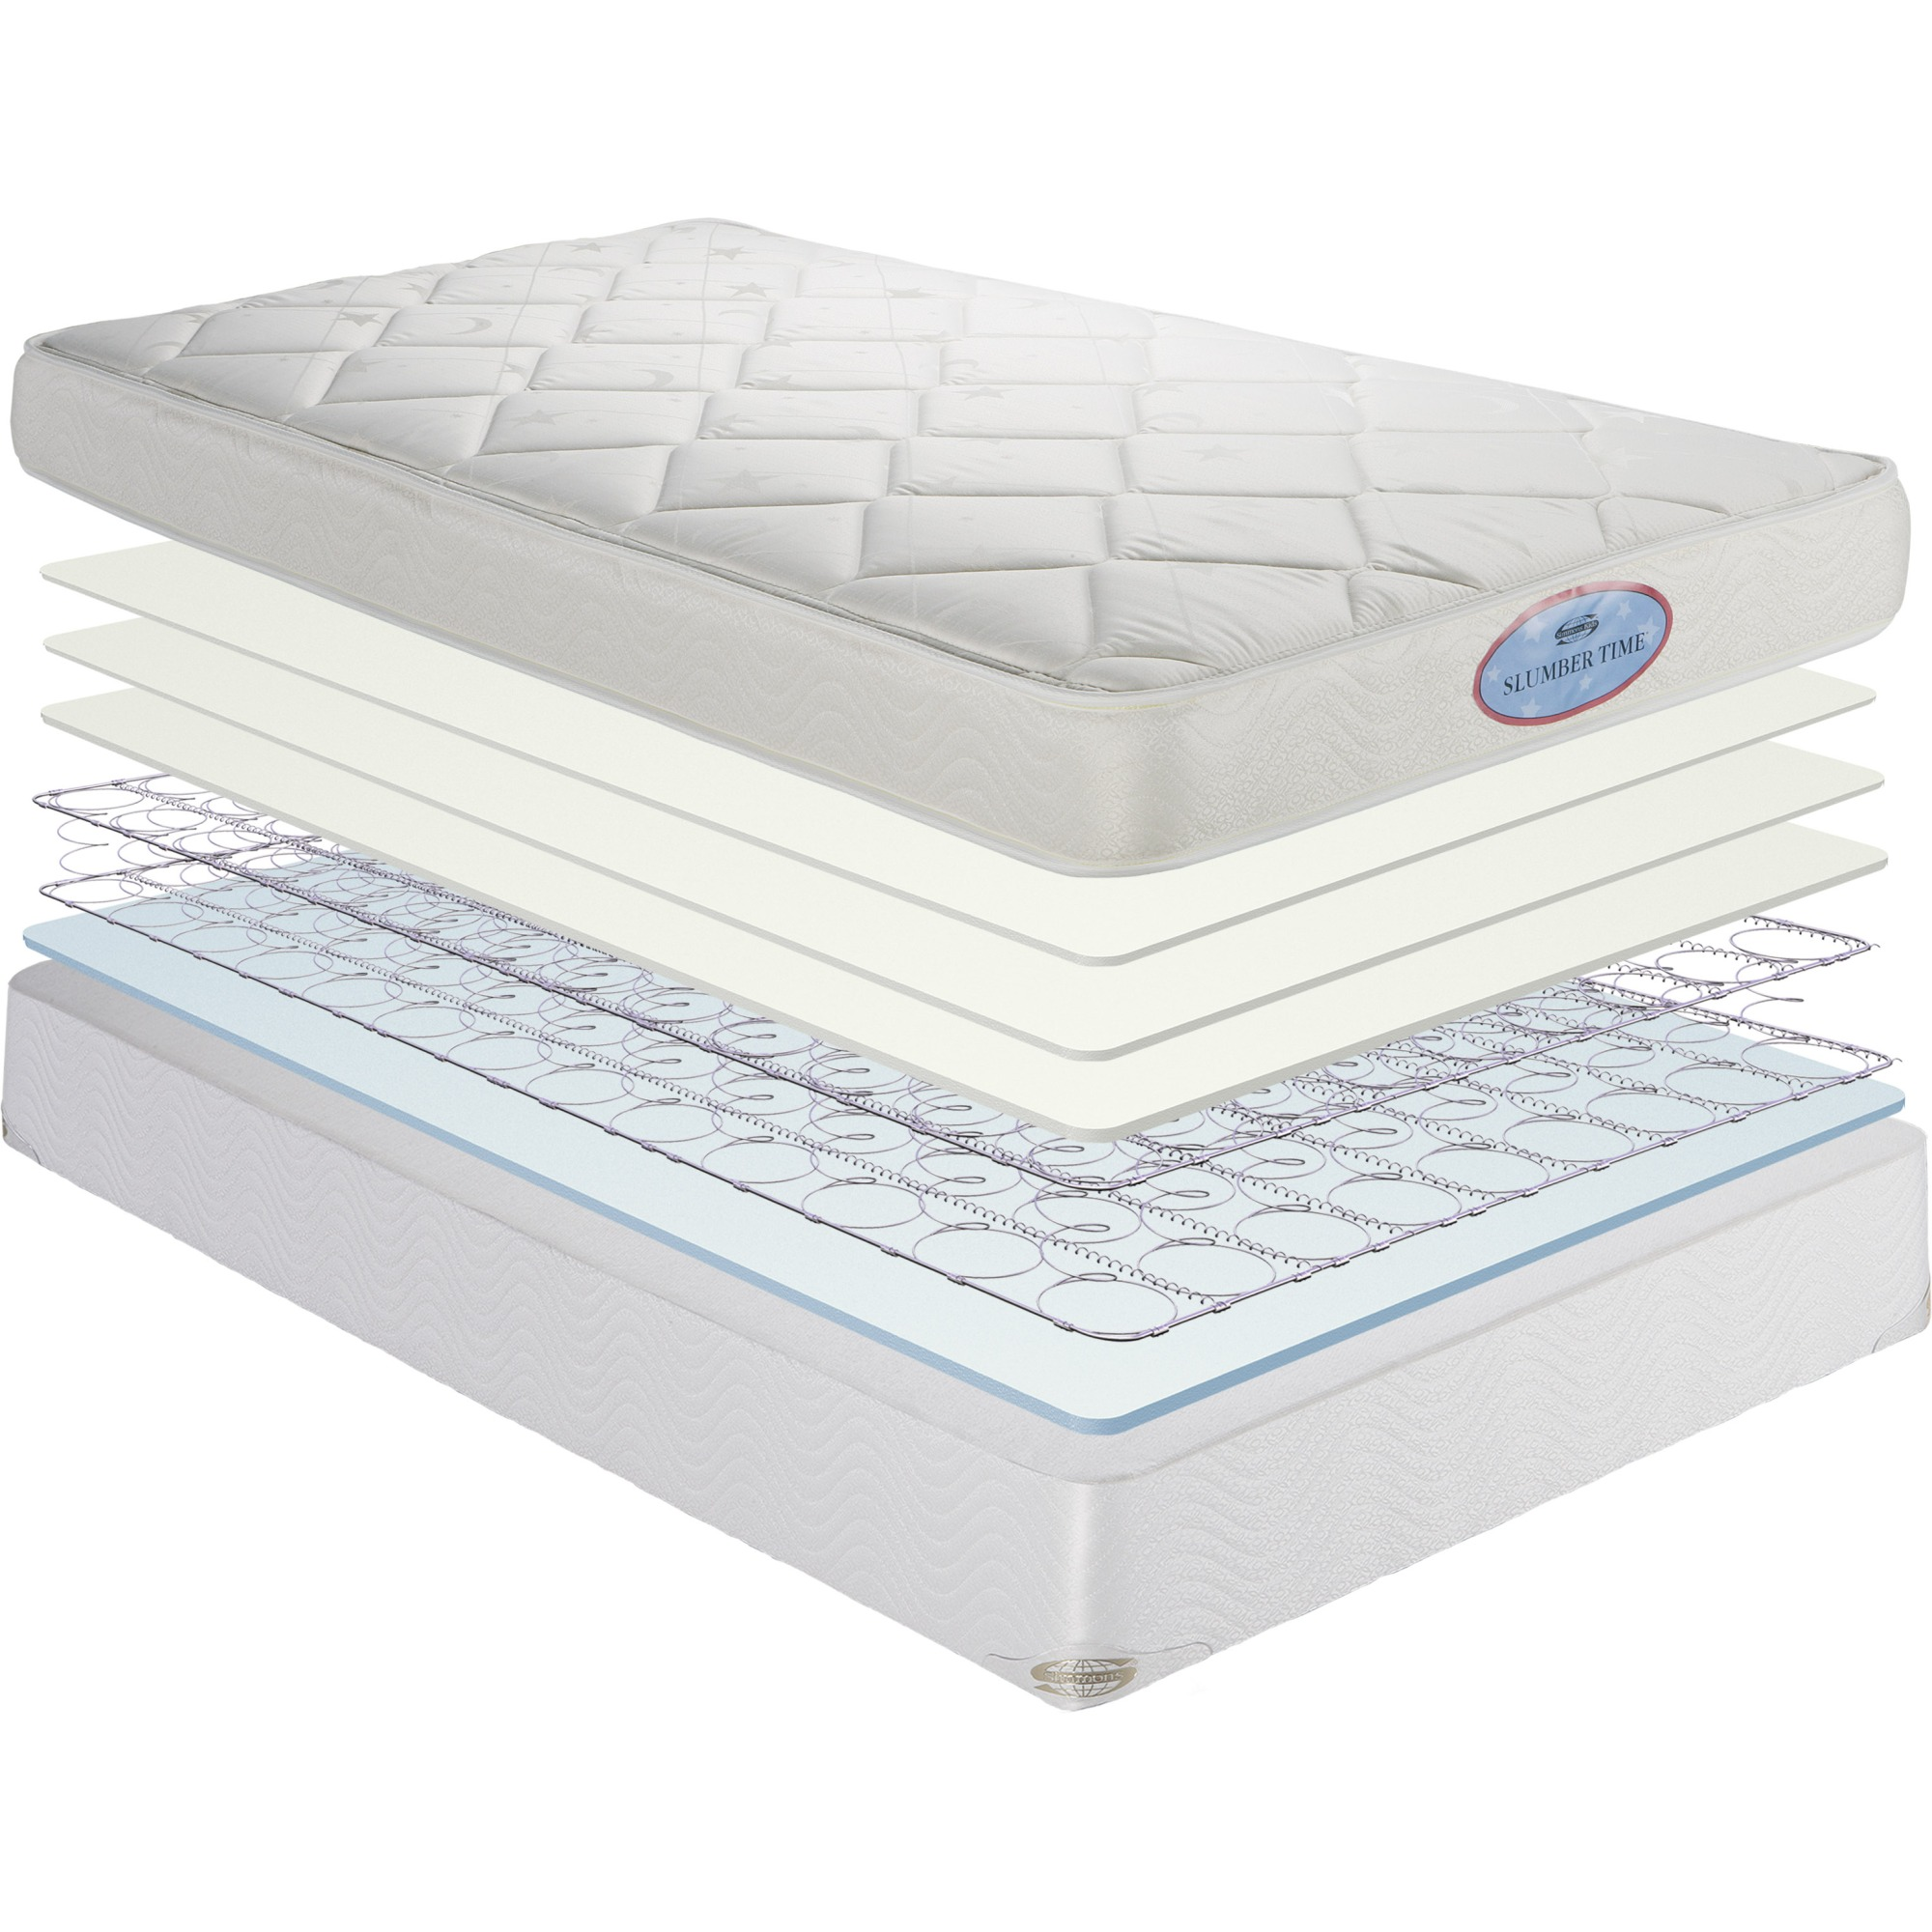 Simmons for Kids Simmons mattresses and more designed for